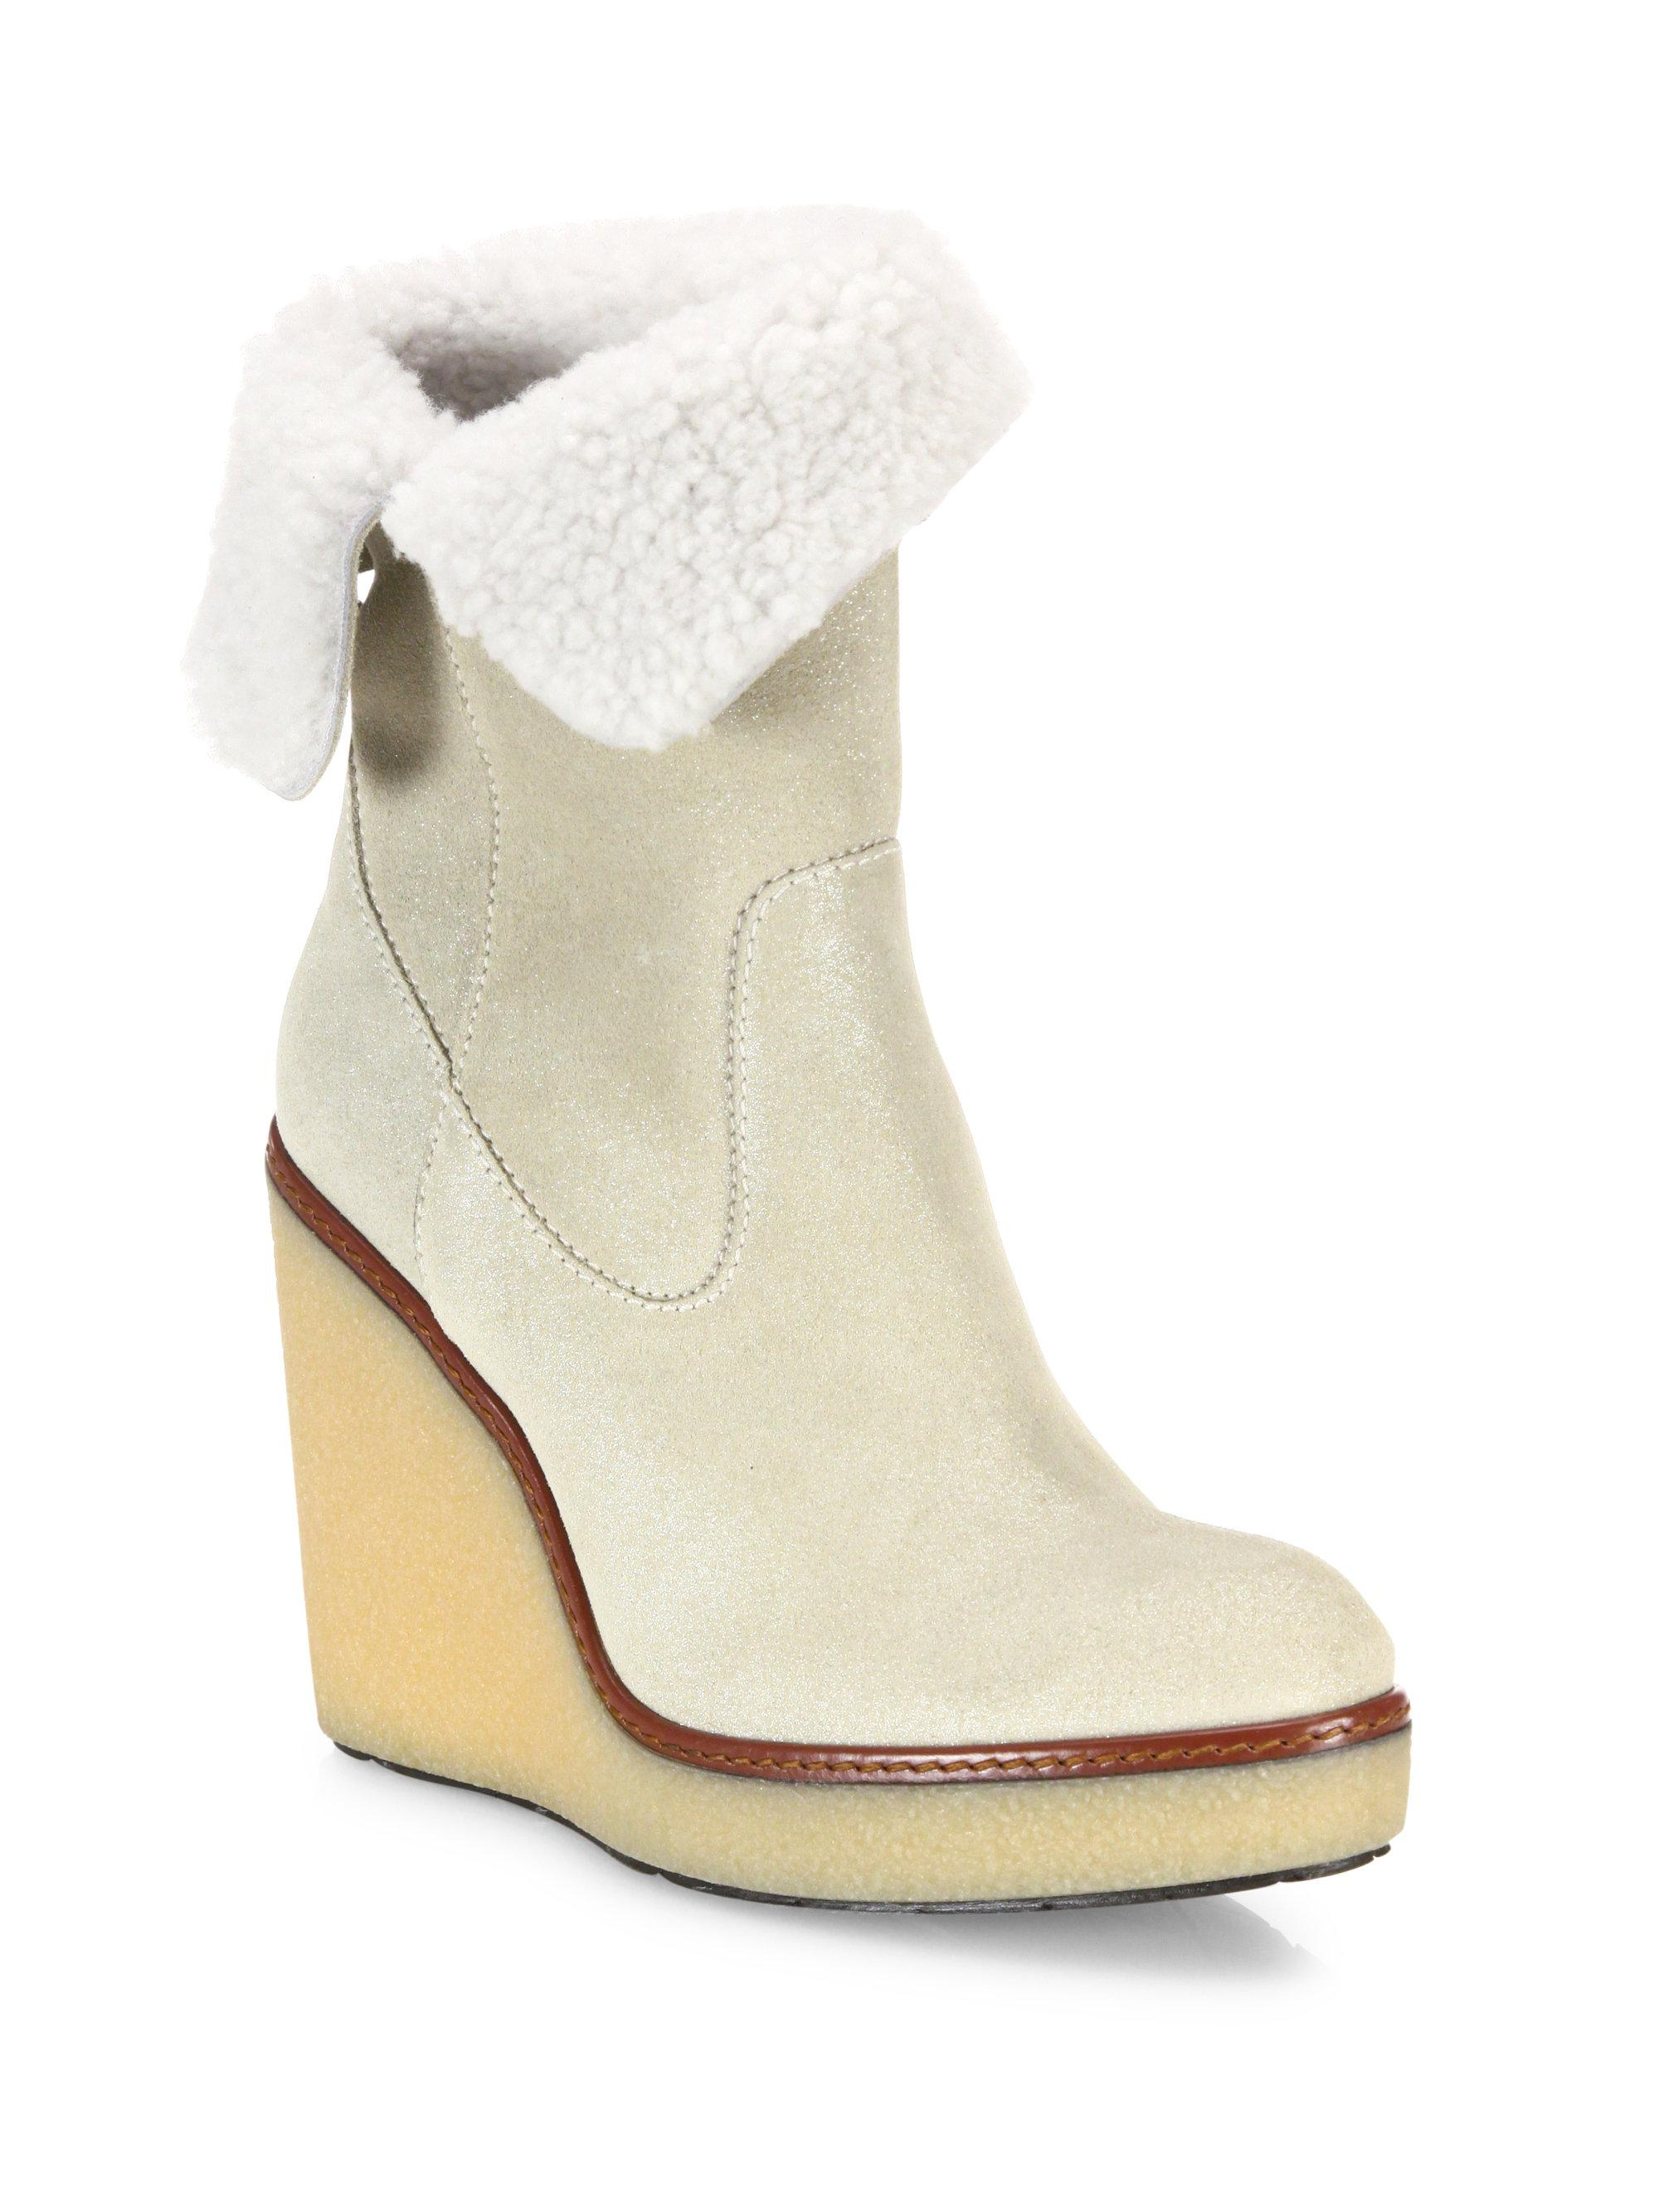 537876d34632 Lyst - Moncler Regine Shearling   Suede Wedge Booties in Natural